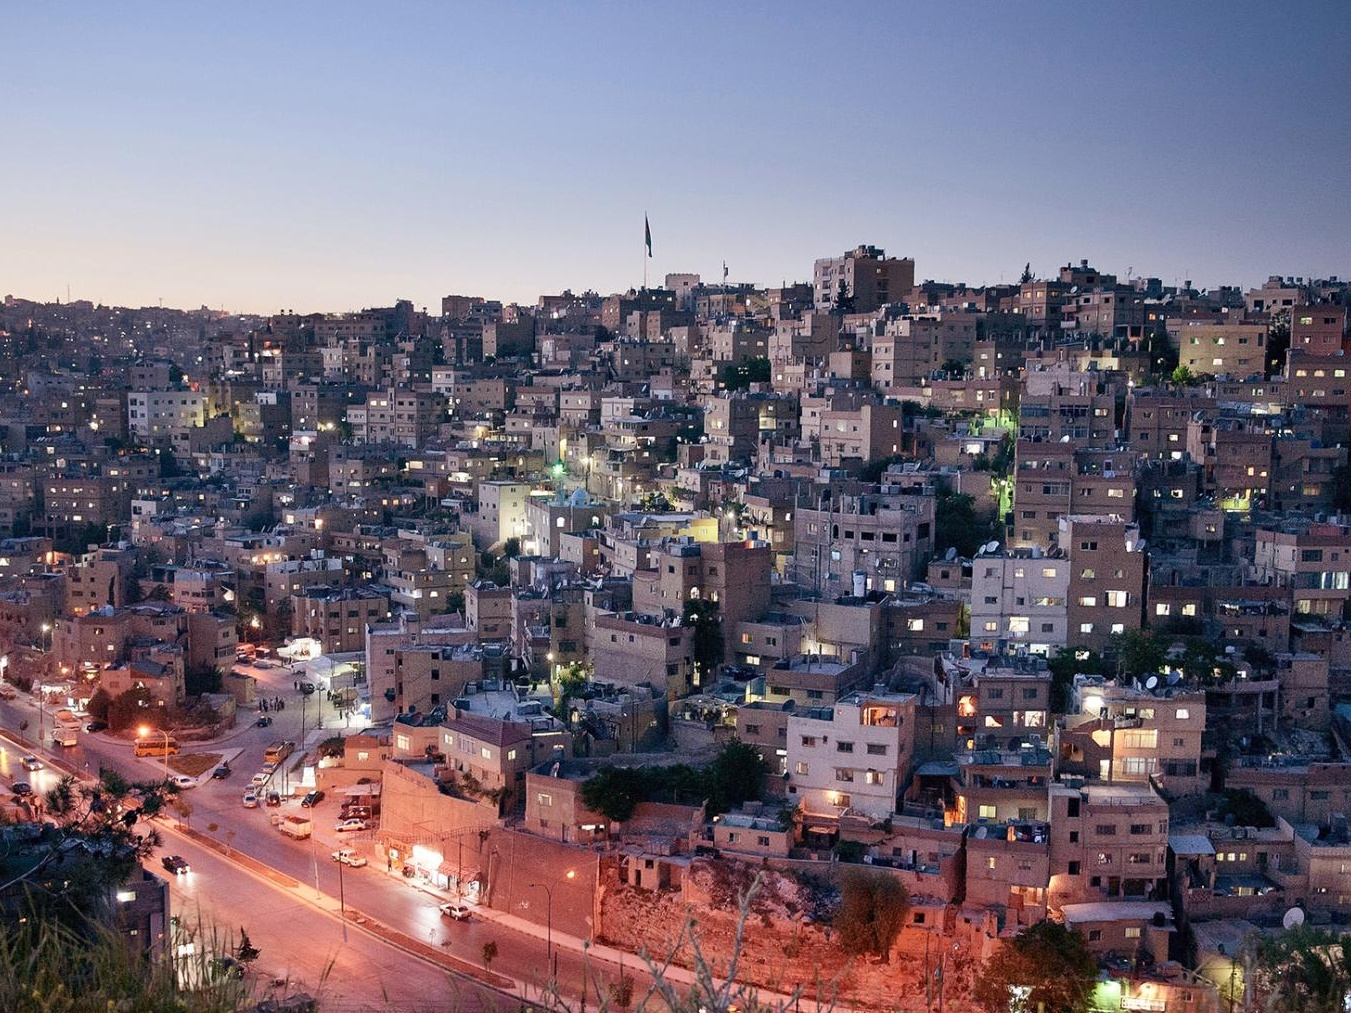 Seedstars to host the sixth edition of Seedstars World in Jordan, 10 startups to be shortlisted for a premium program